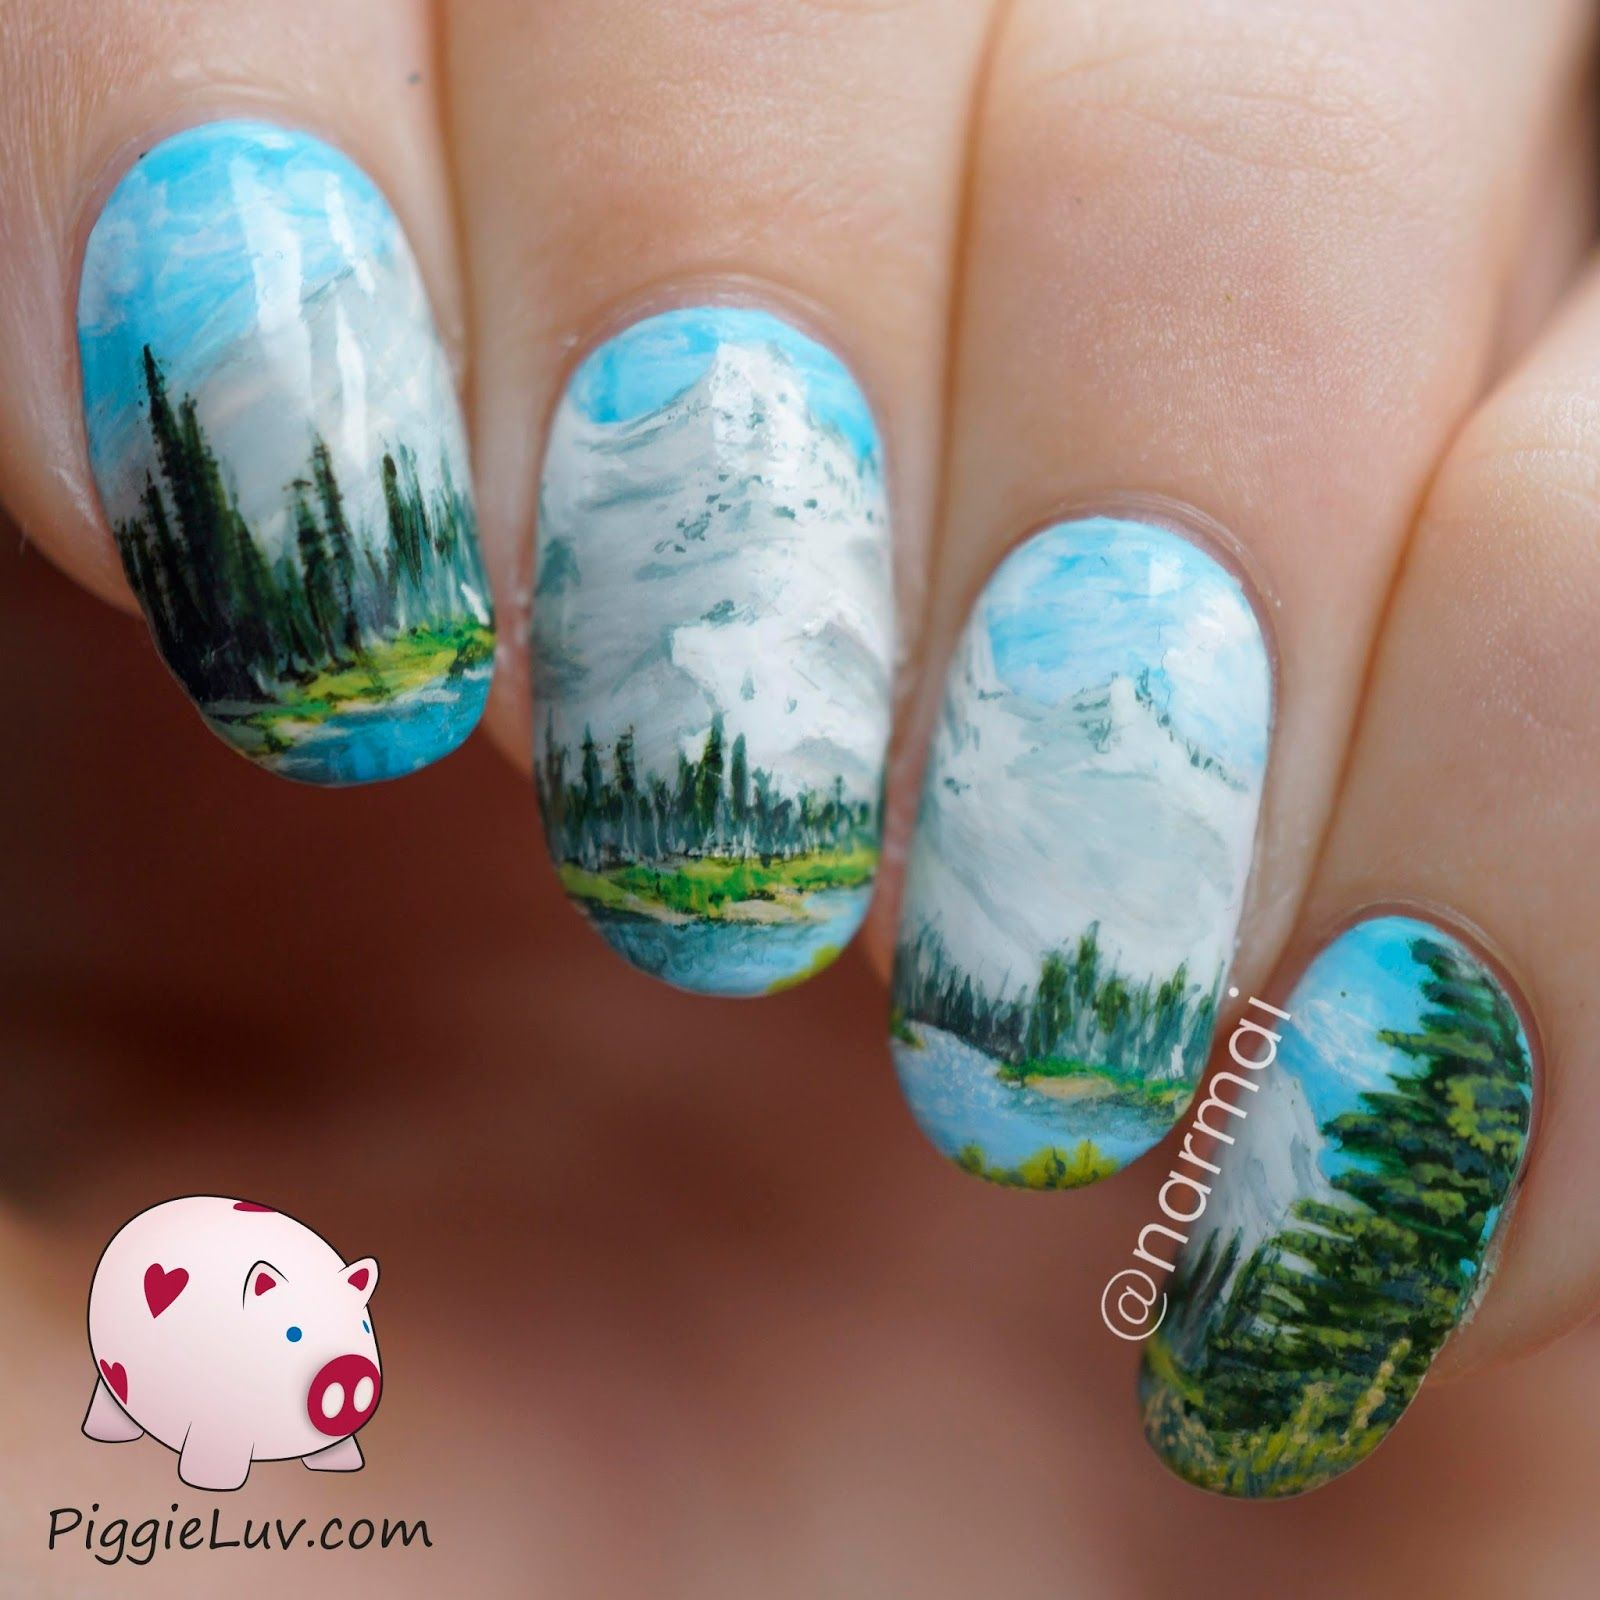 Nail art inspired by a bob ross painting bob ross bobs and nail art inspired by a bob ross painting prinsesfo Choice Image